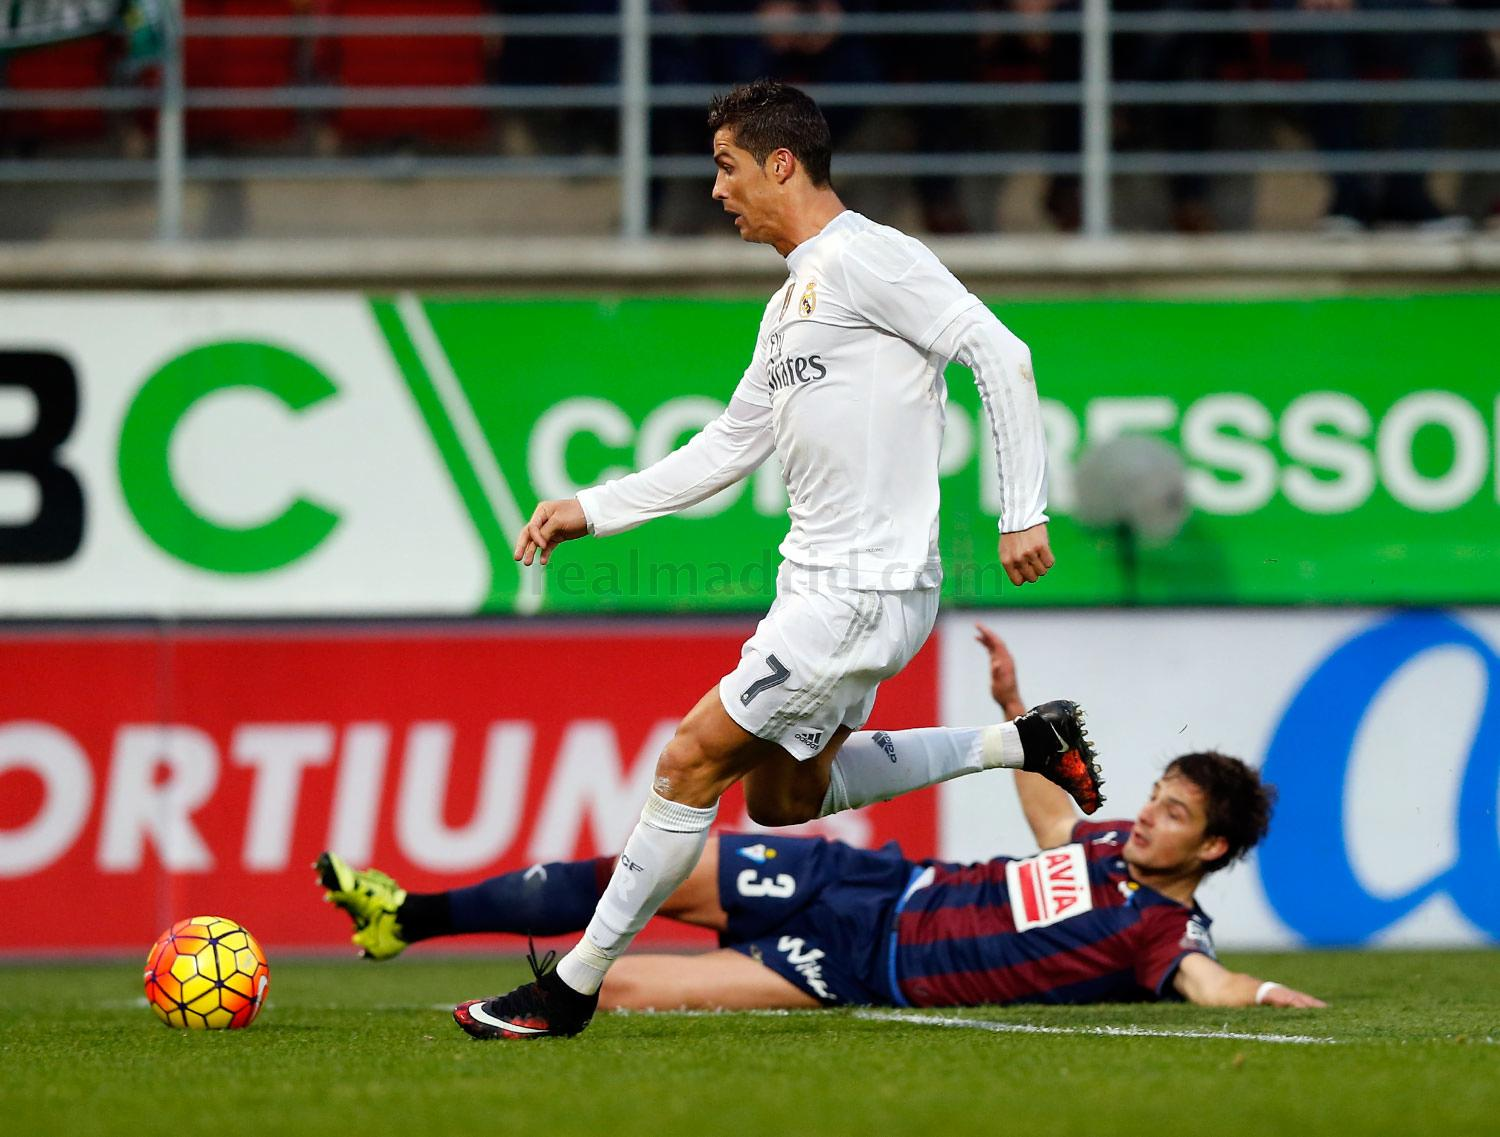 Real Madrid - Eibar - Real Madrid - 29-11-2015